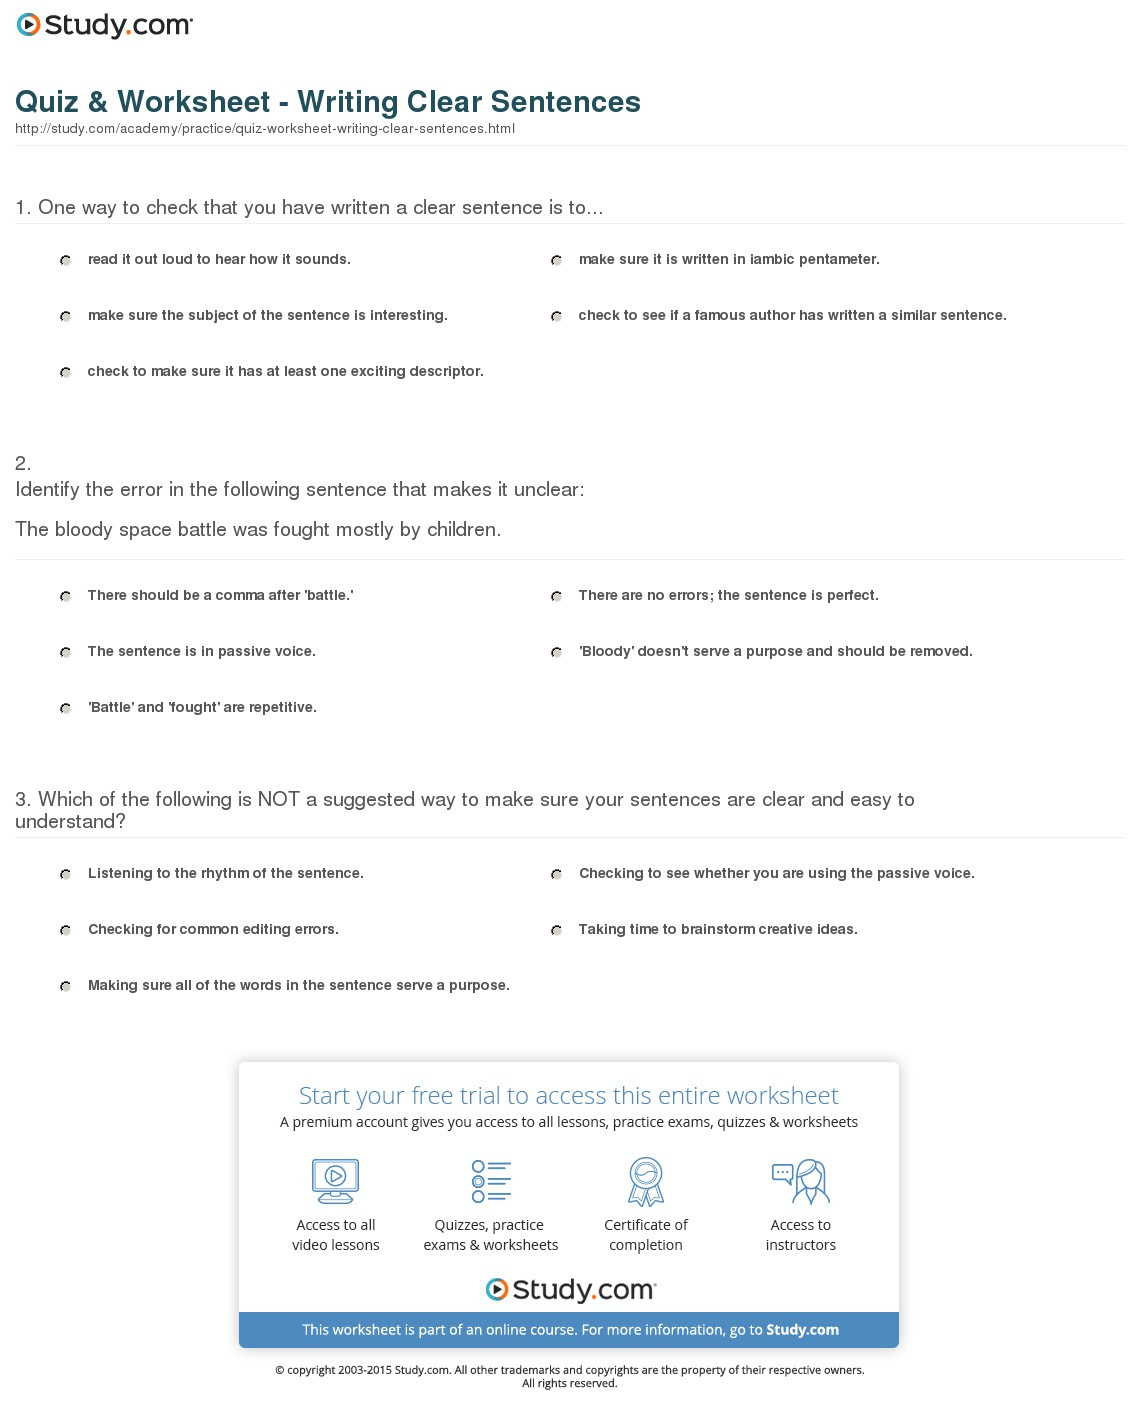 Quiz Worksheet Writing Clear Sentences Study